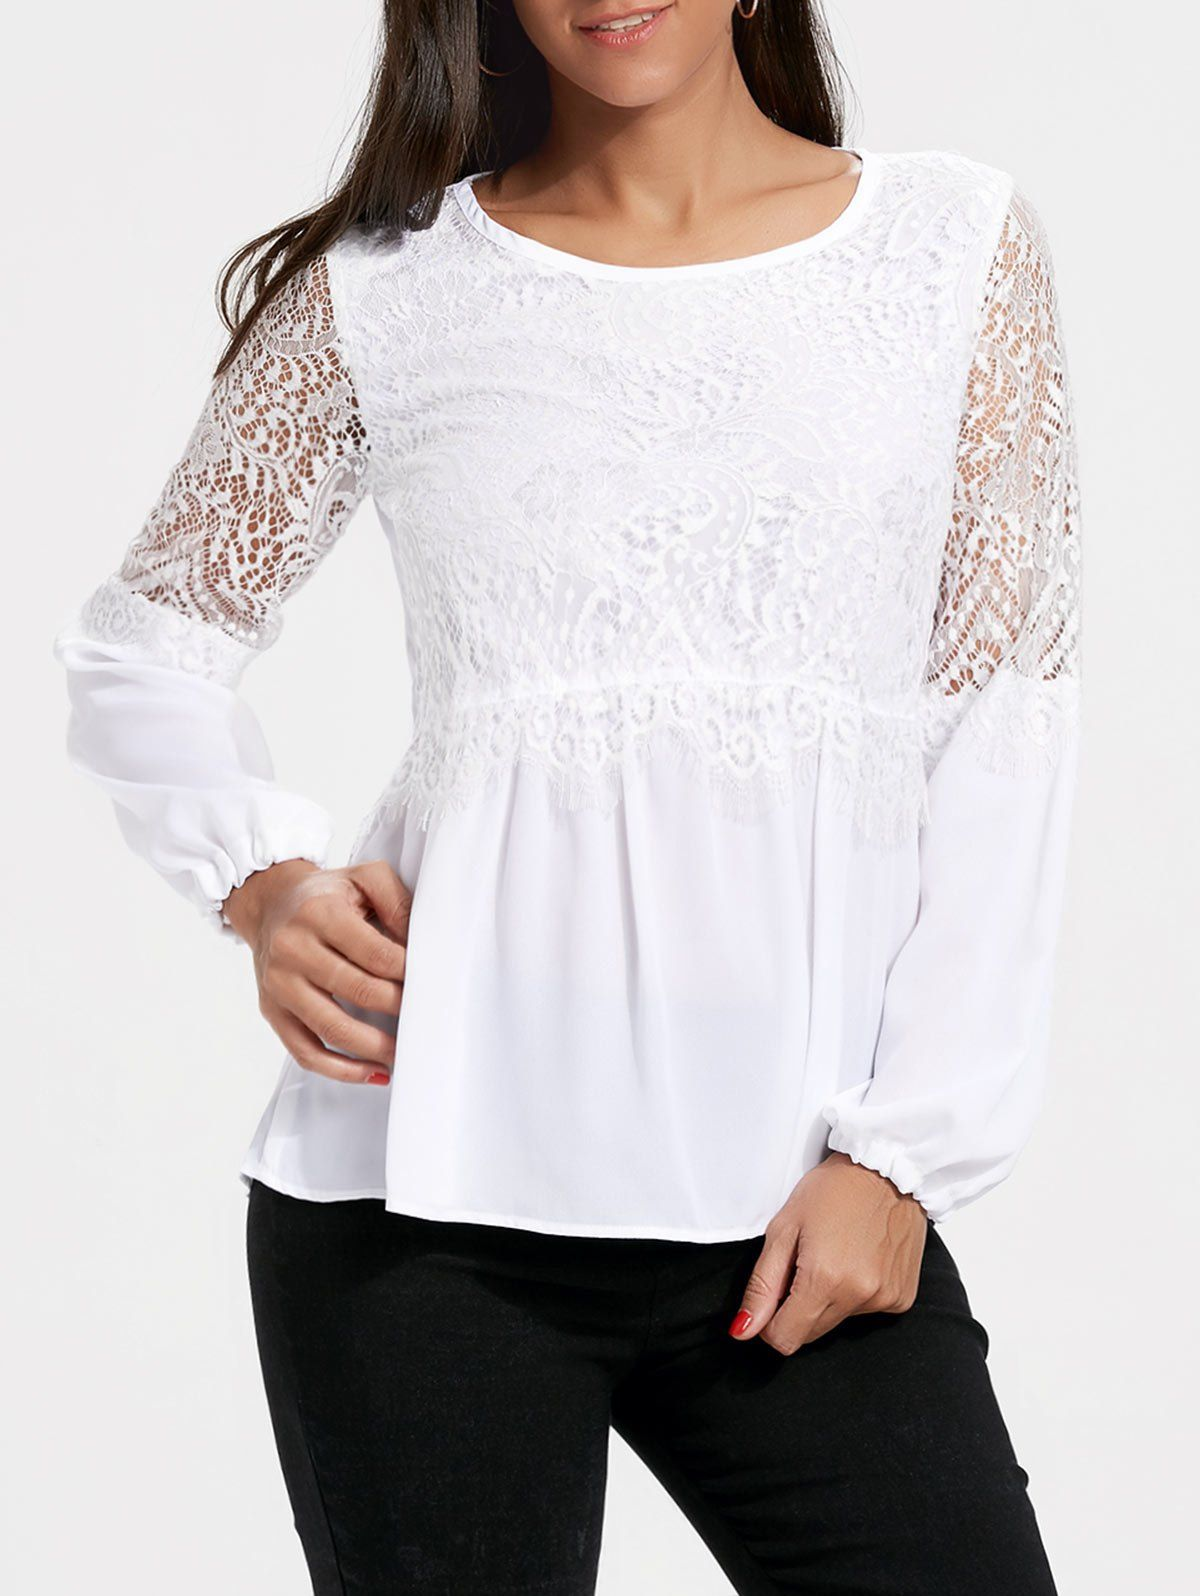 3e32f2bc0d1 White Casual Fall Spring Fashion Lace Womens Top